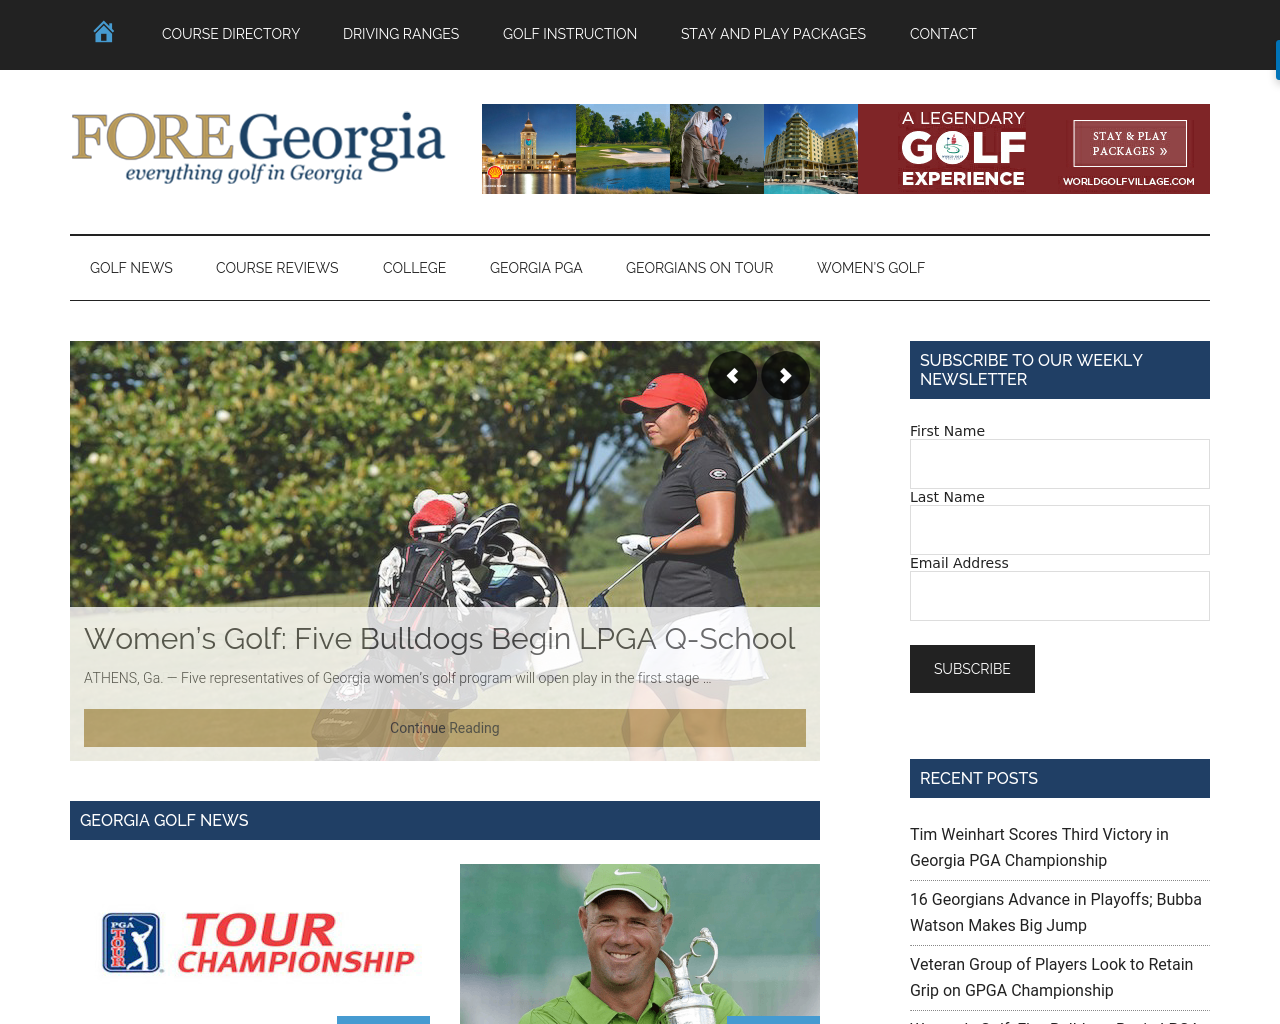 FORE-Georgia-Advertising-Reviews-Pricing